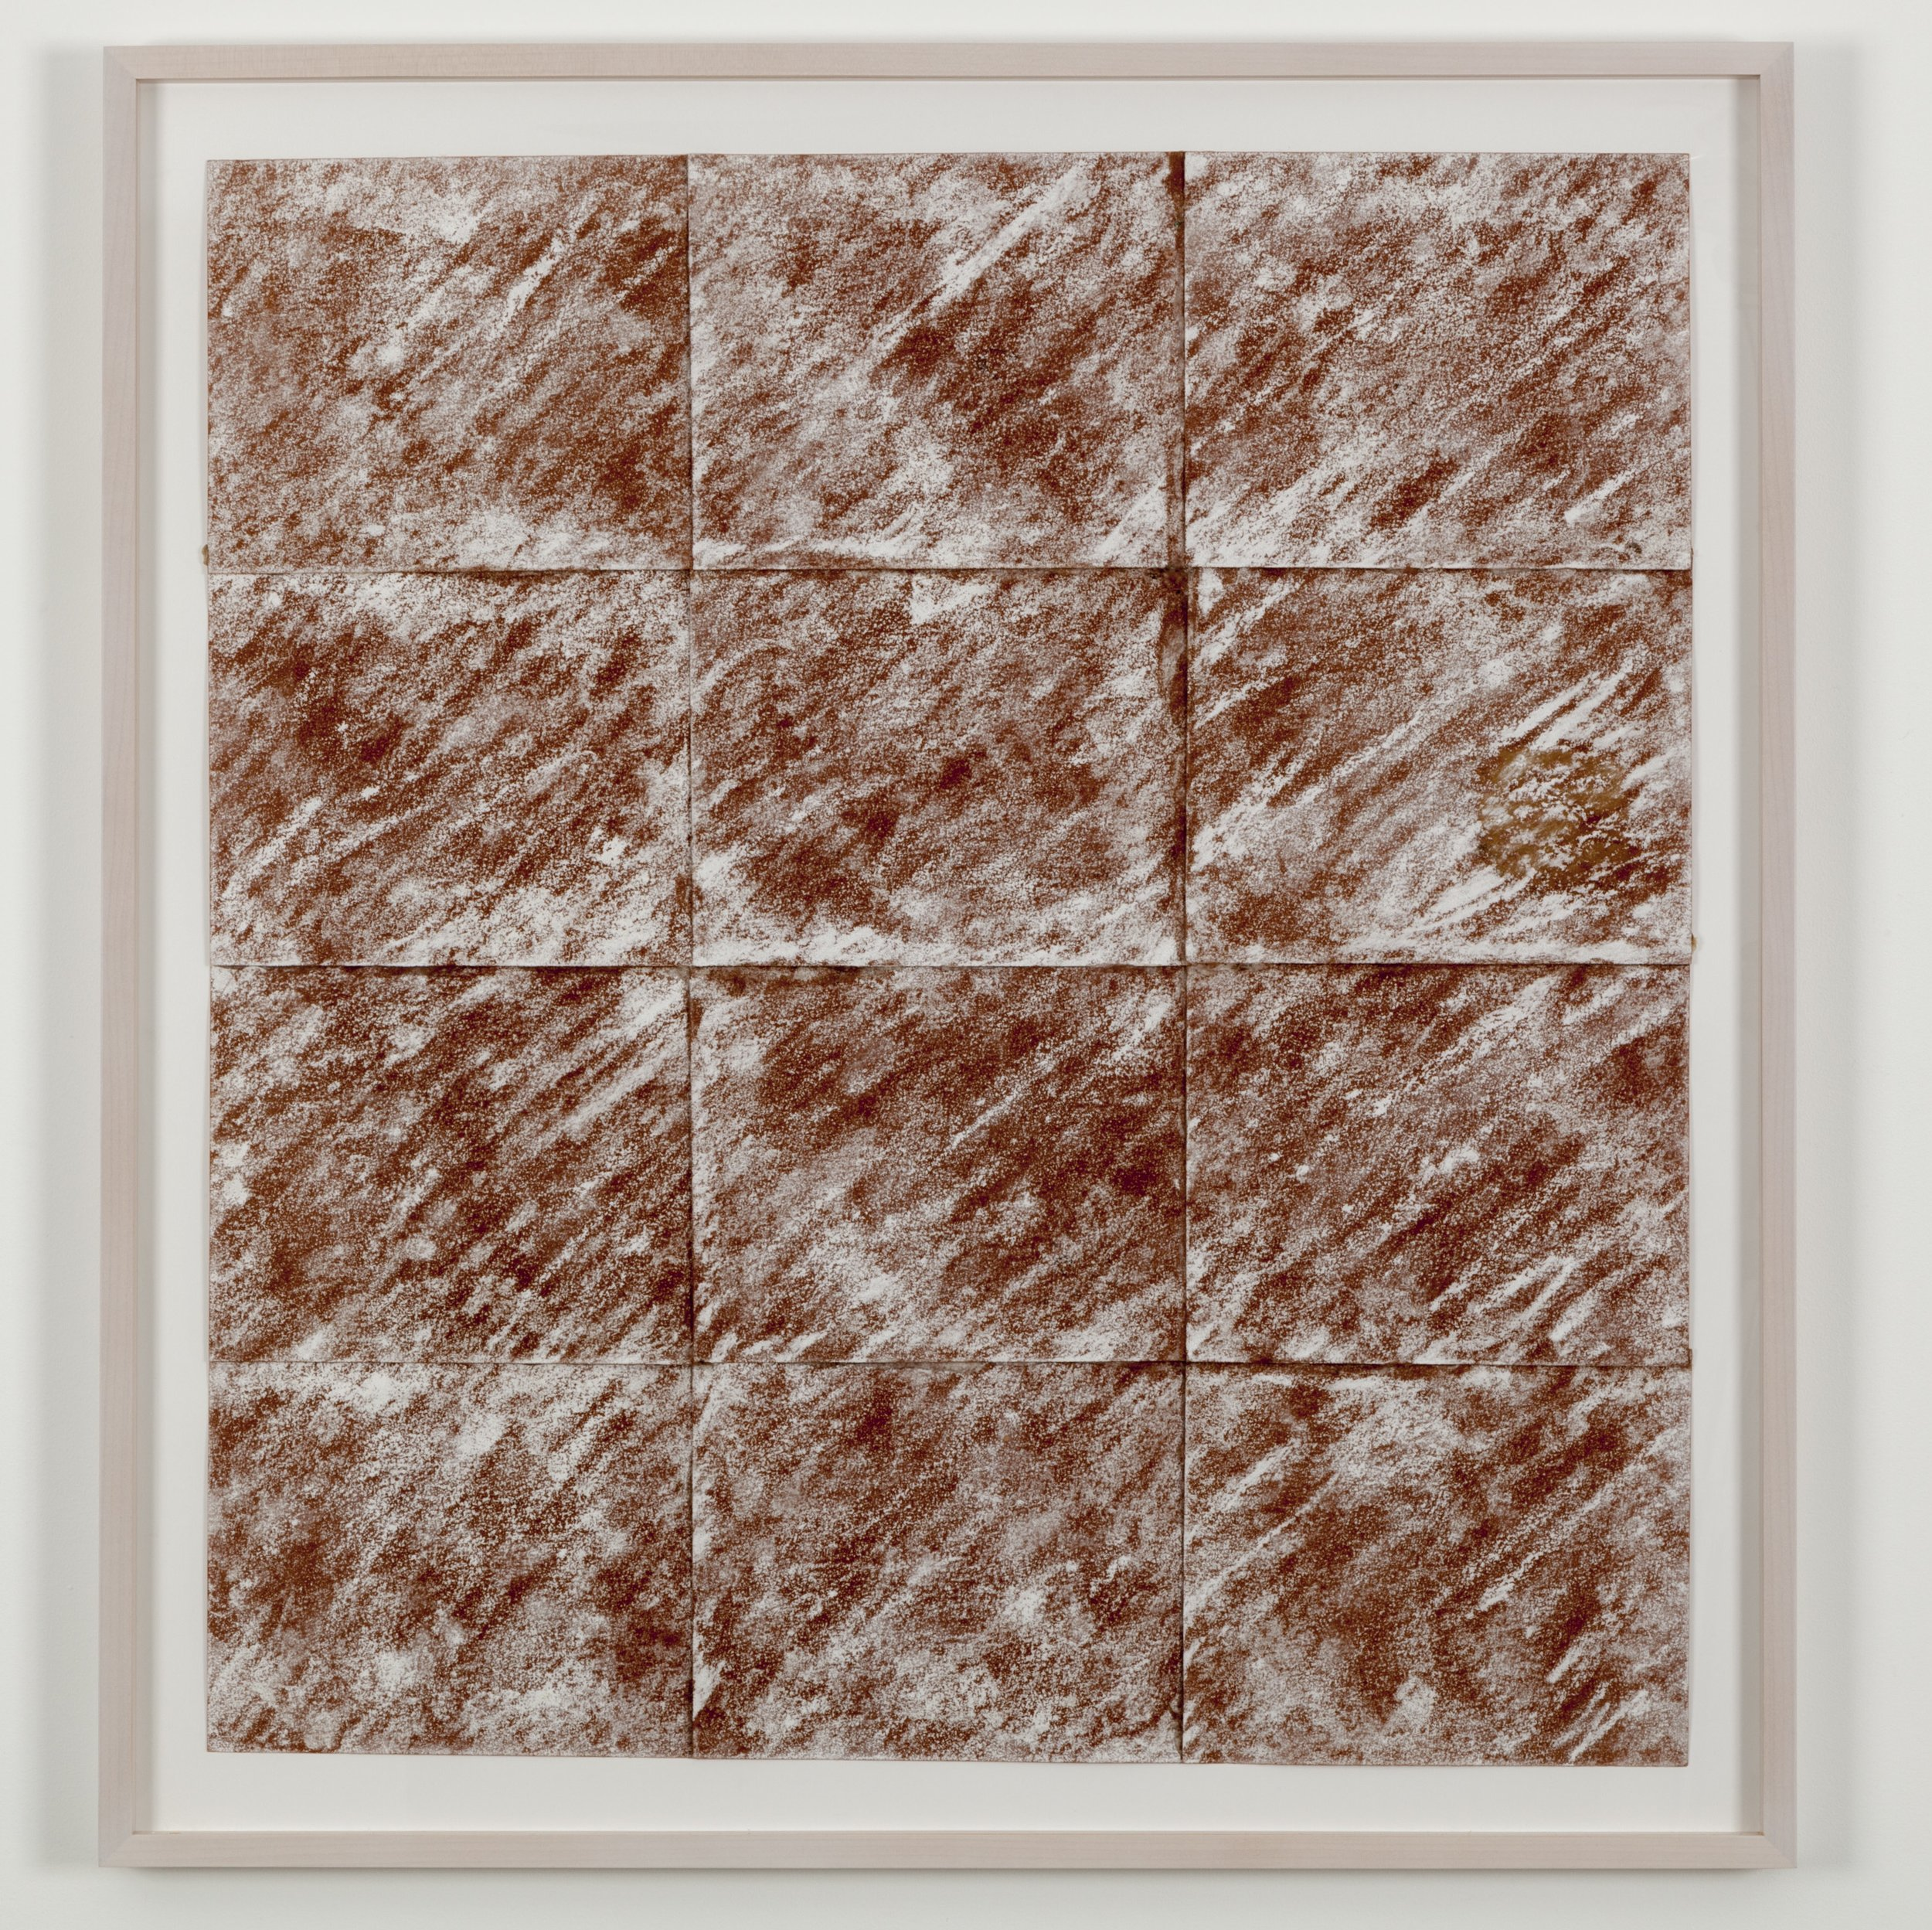 Earth of Boundary , 1972 臨界地 ( Rinkaichi ) Sand paper, chalk 34 7/8 x 31 7/8 inches 88.5 x 81 centimeters